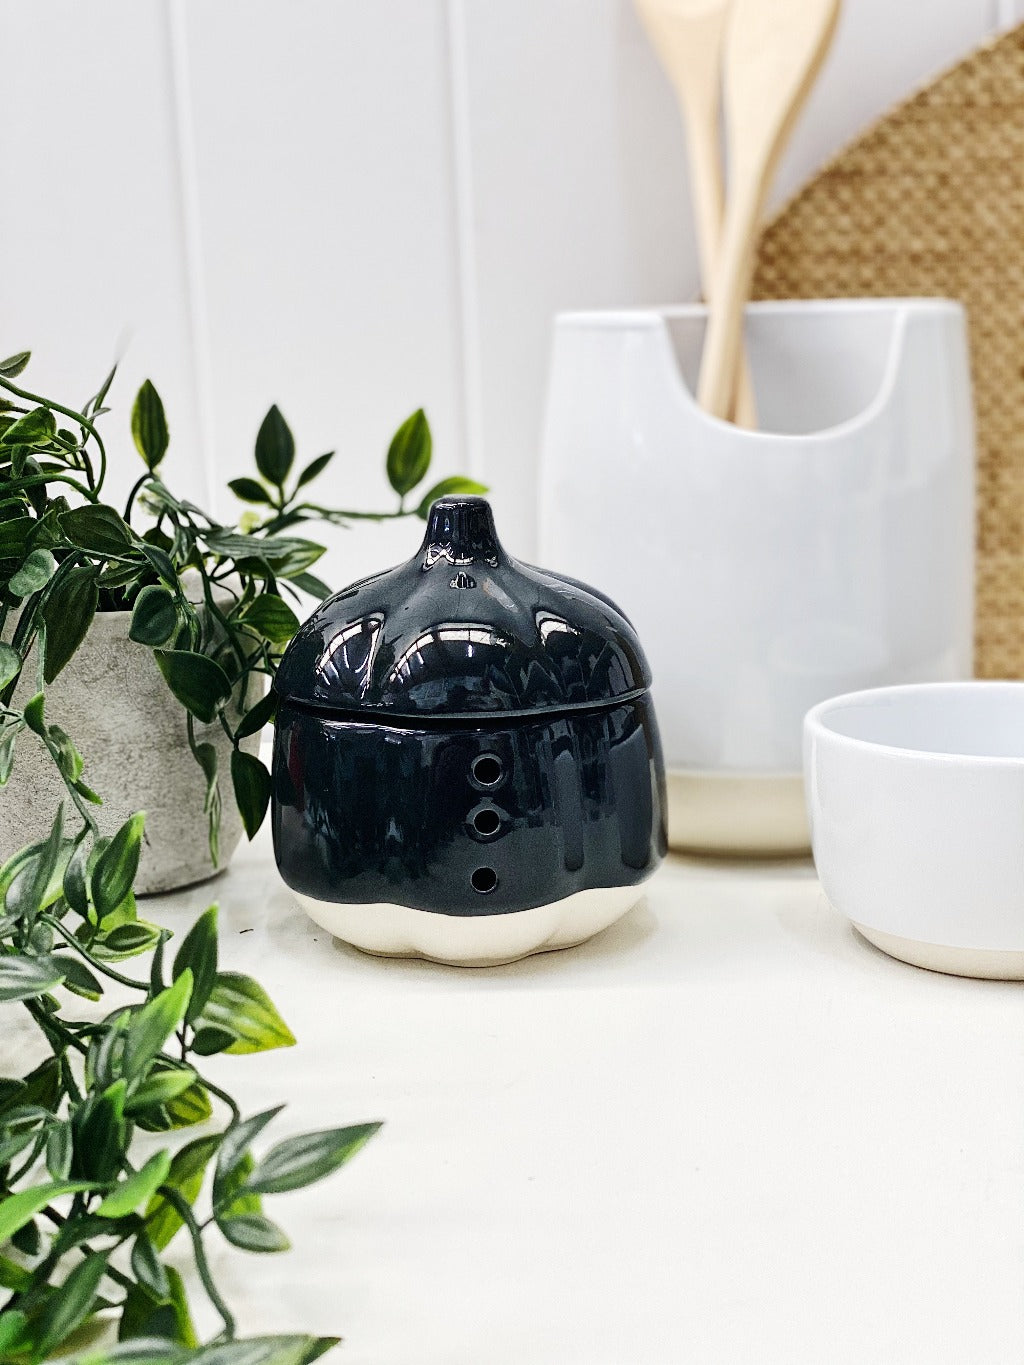 Beacon Black 11cm Garlic Keeper - Salt&Pepper - 11x11.5cm - crafted from fine-quality and long-lasting stoneware - Features a removable lid - air holes for ventilation - Dishwasher safe |Bliss Gifts & Homewares - Unit 8, 259 Princes Hwy Ulladulla - Shop Online & In store - 0427795959, 44541523 - Australia wide shipping